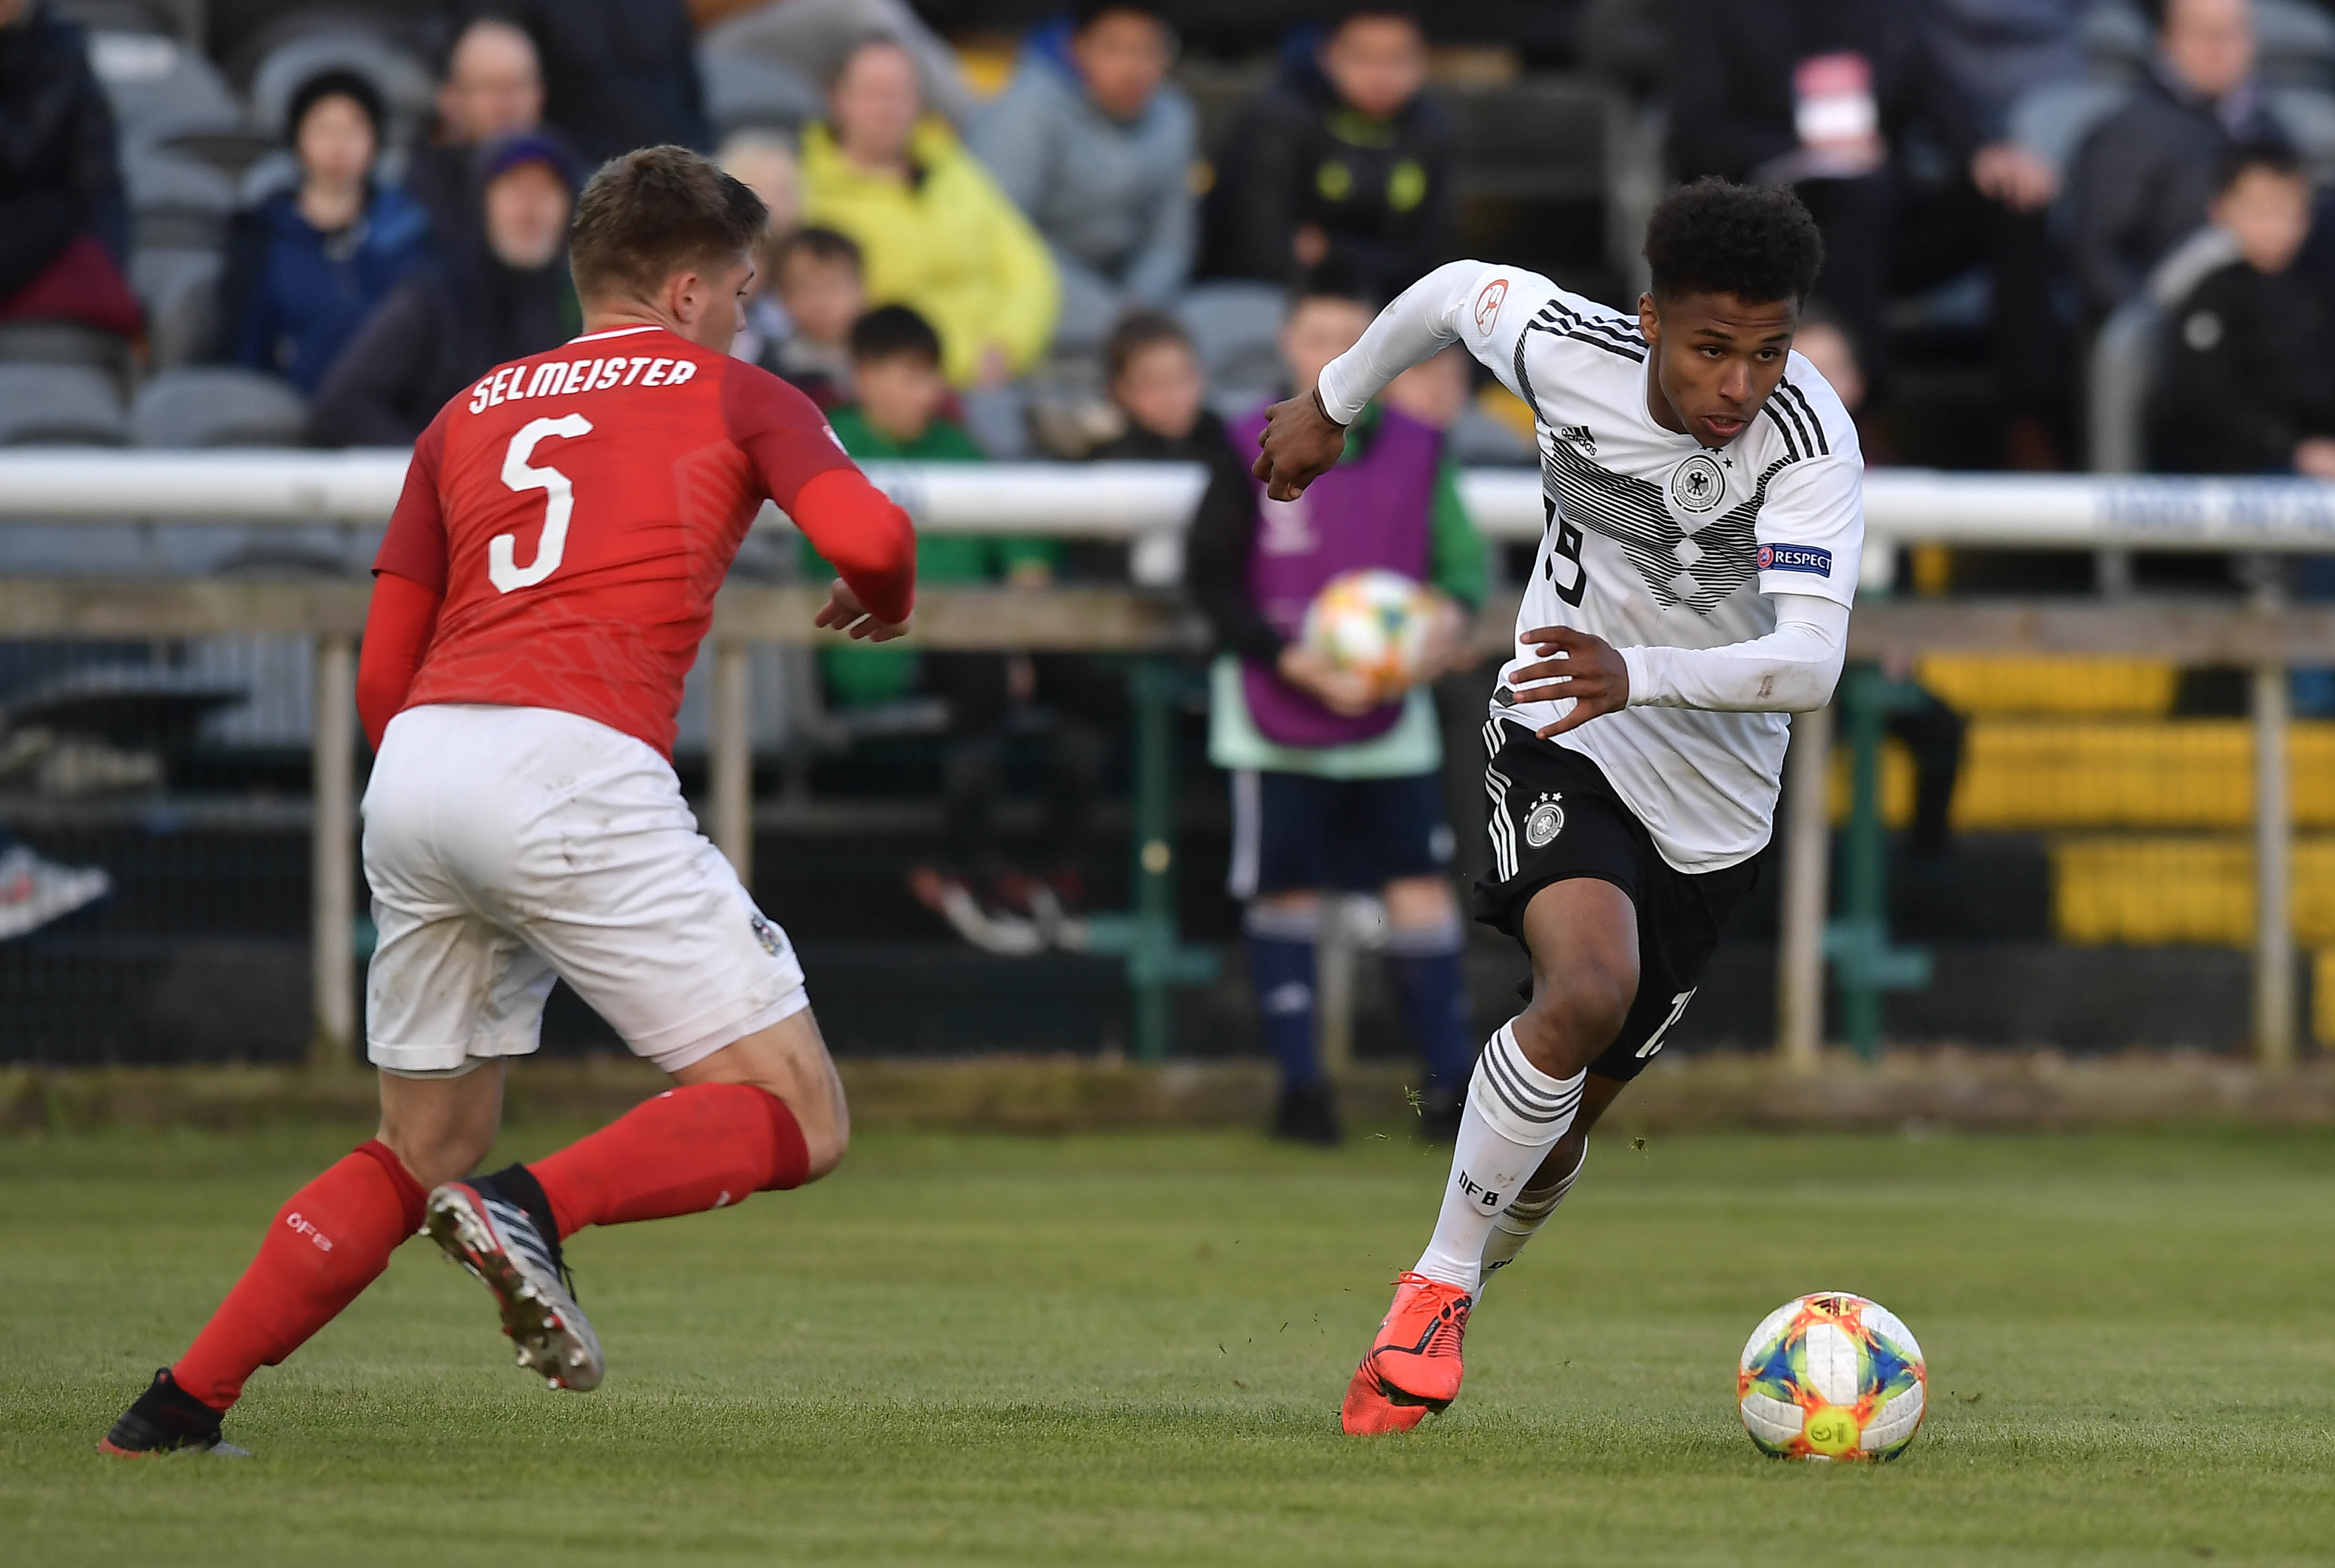 DUBLIN, IRELAND - MAY 10: Karim Adeyemi of Germany and Julian Selmeister of Austria during the UEFA Under 17 European Championship Group D football match between Austria and Germany at Carlisle Grounds stadium on May 10, 2019 in Dublin, Ireland. (Photo by Charles McQuillan/Getty Images)